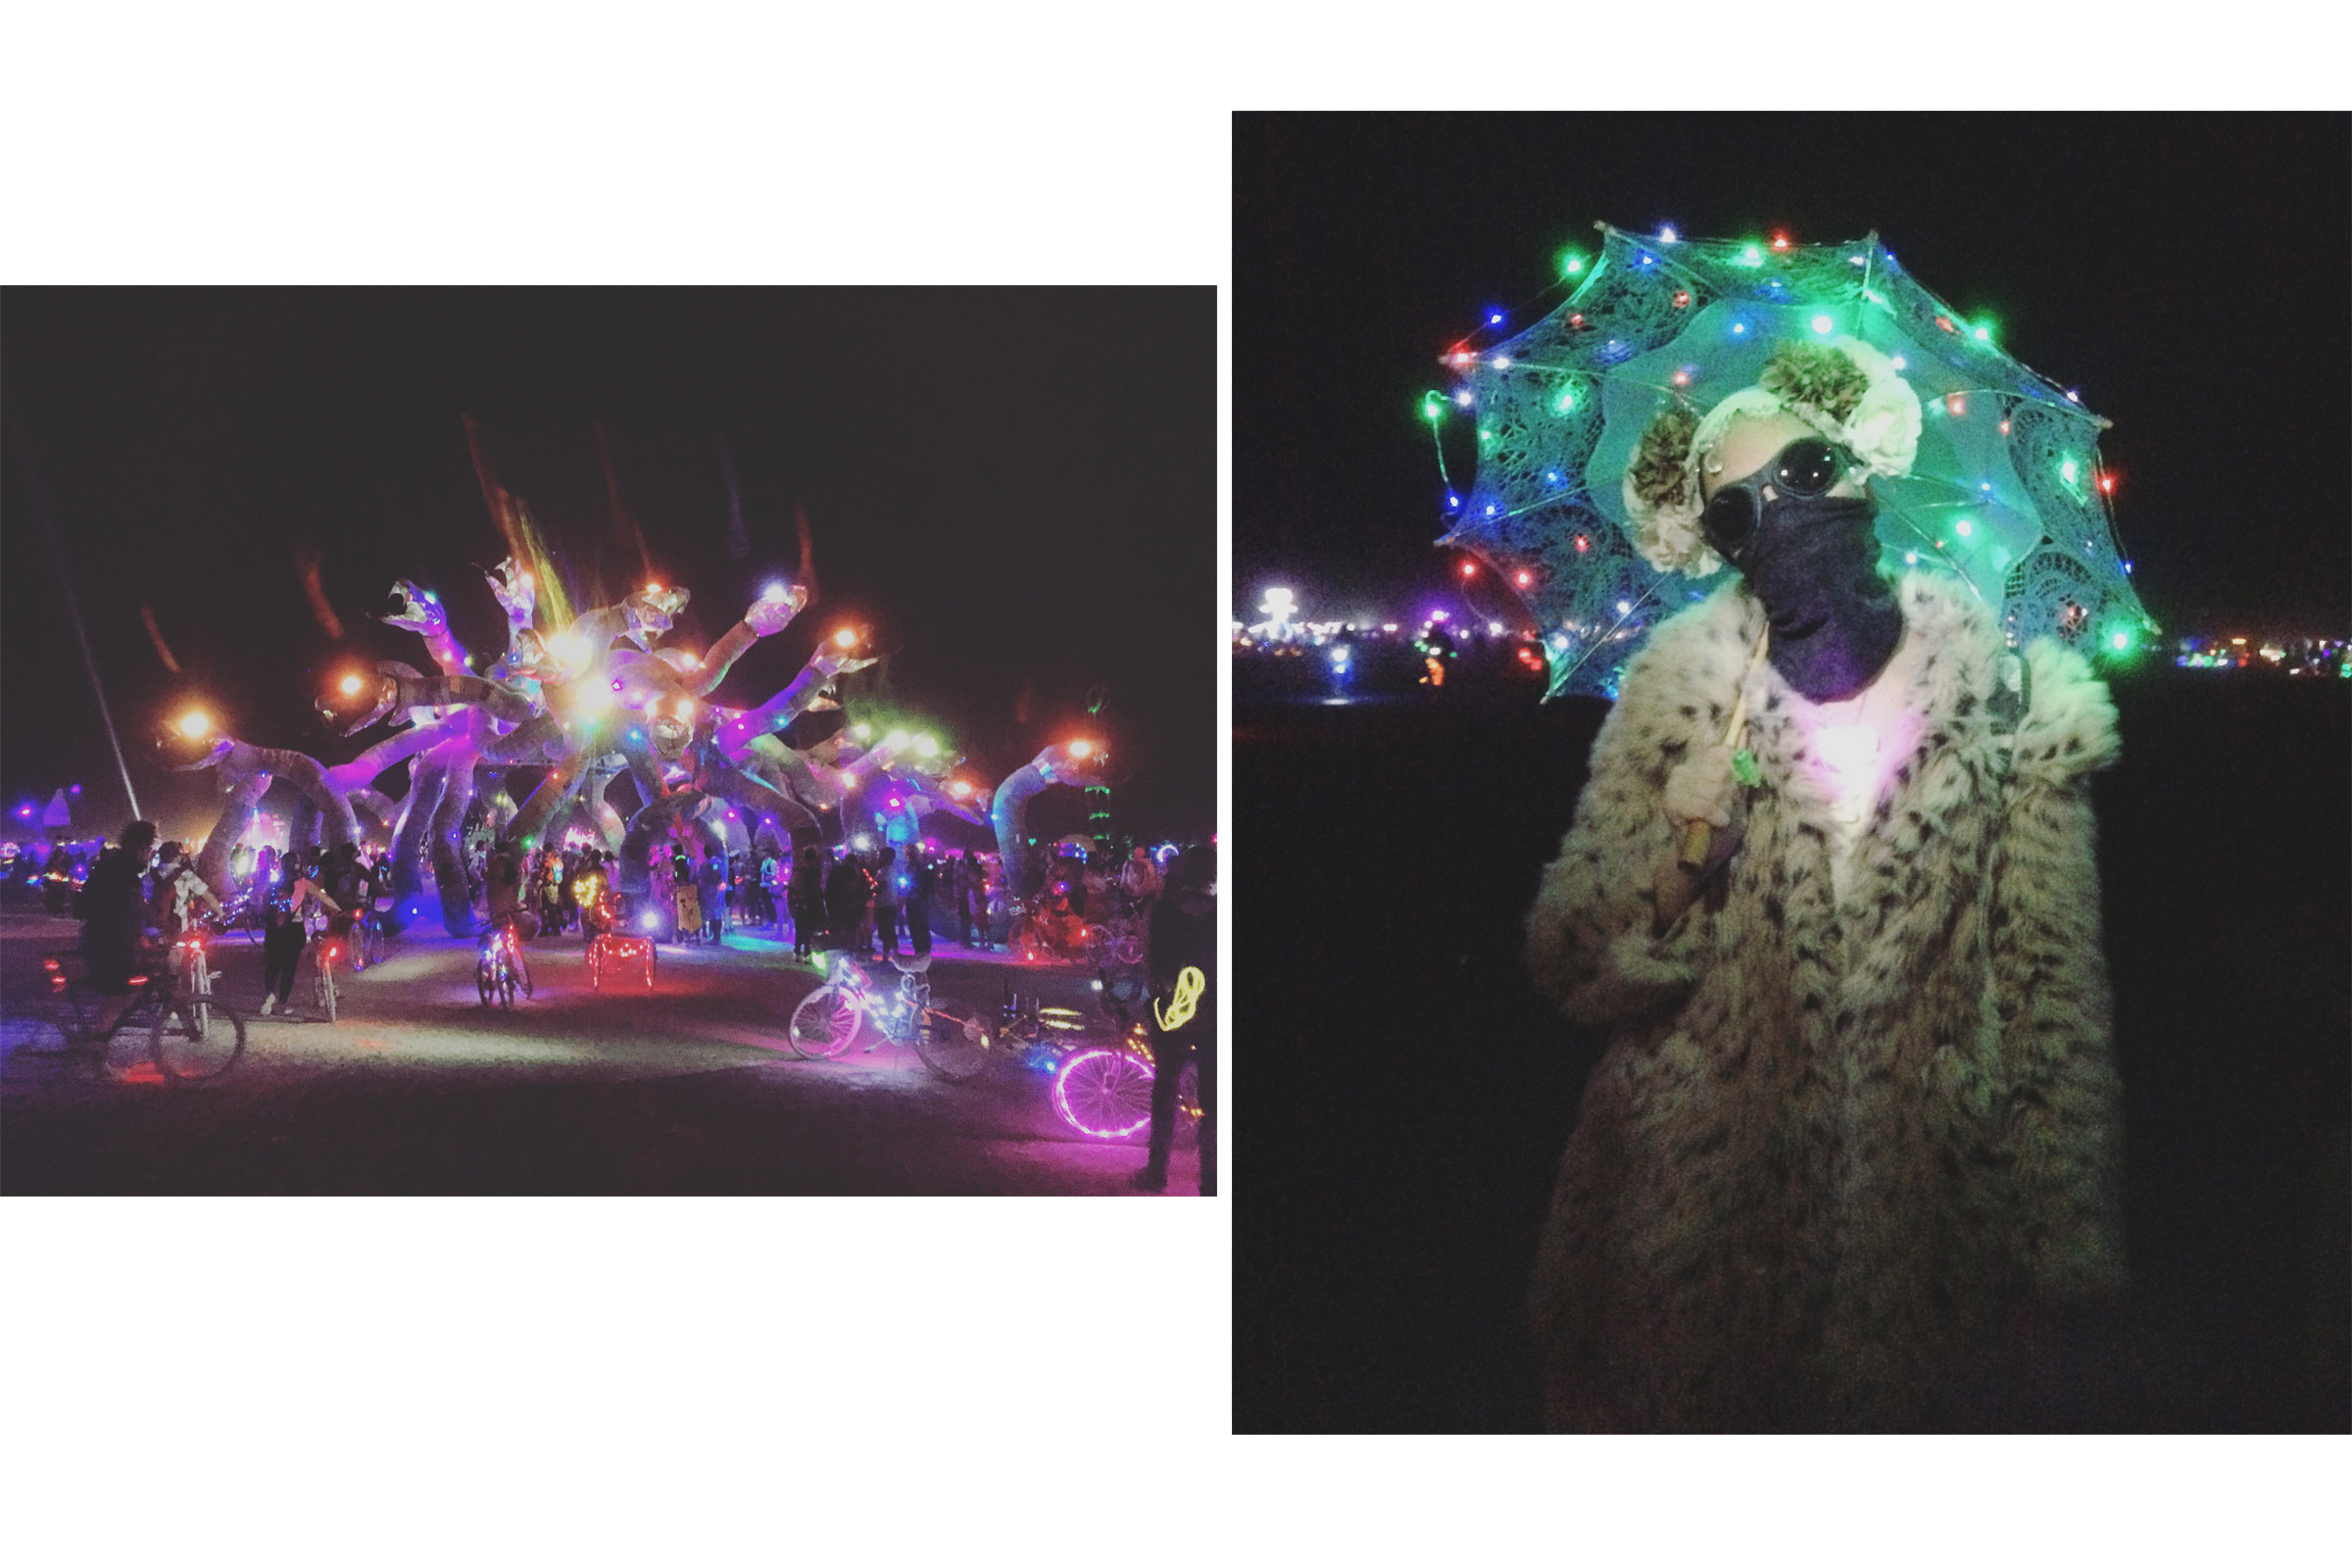 The twinkly LED lights of Burning Man at night (left), my nighttime furs and lights (right)